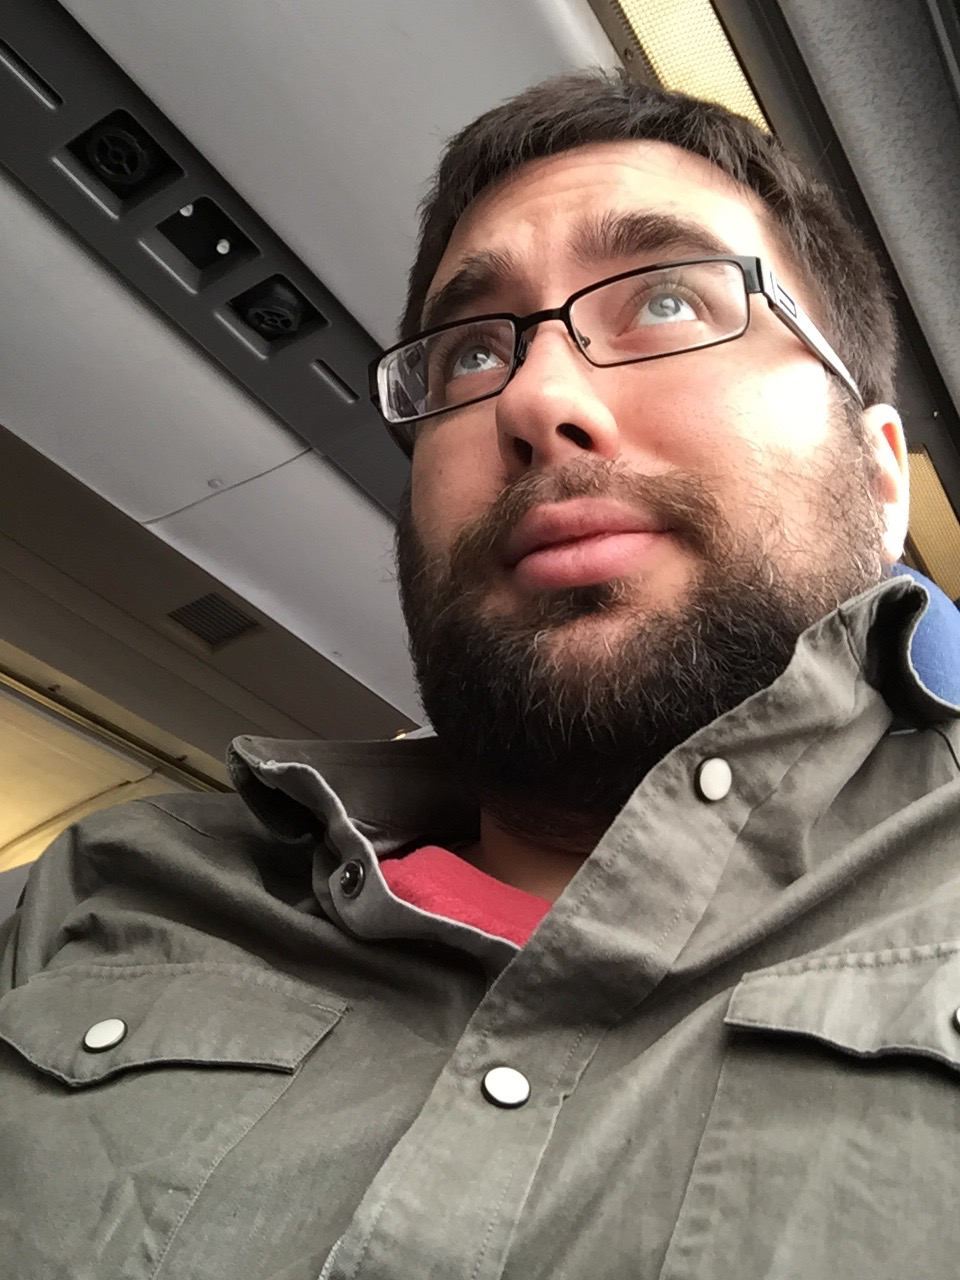 A selfie taken on a train, with odd composition that should look bad and yet somehow works, here.